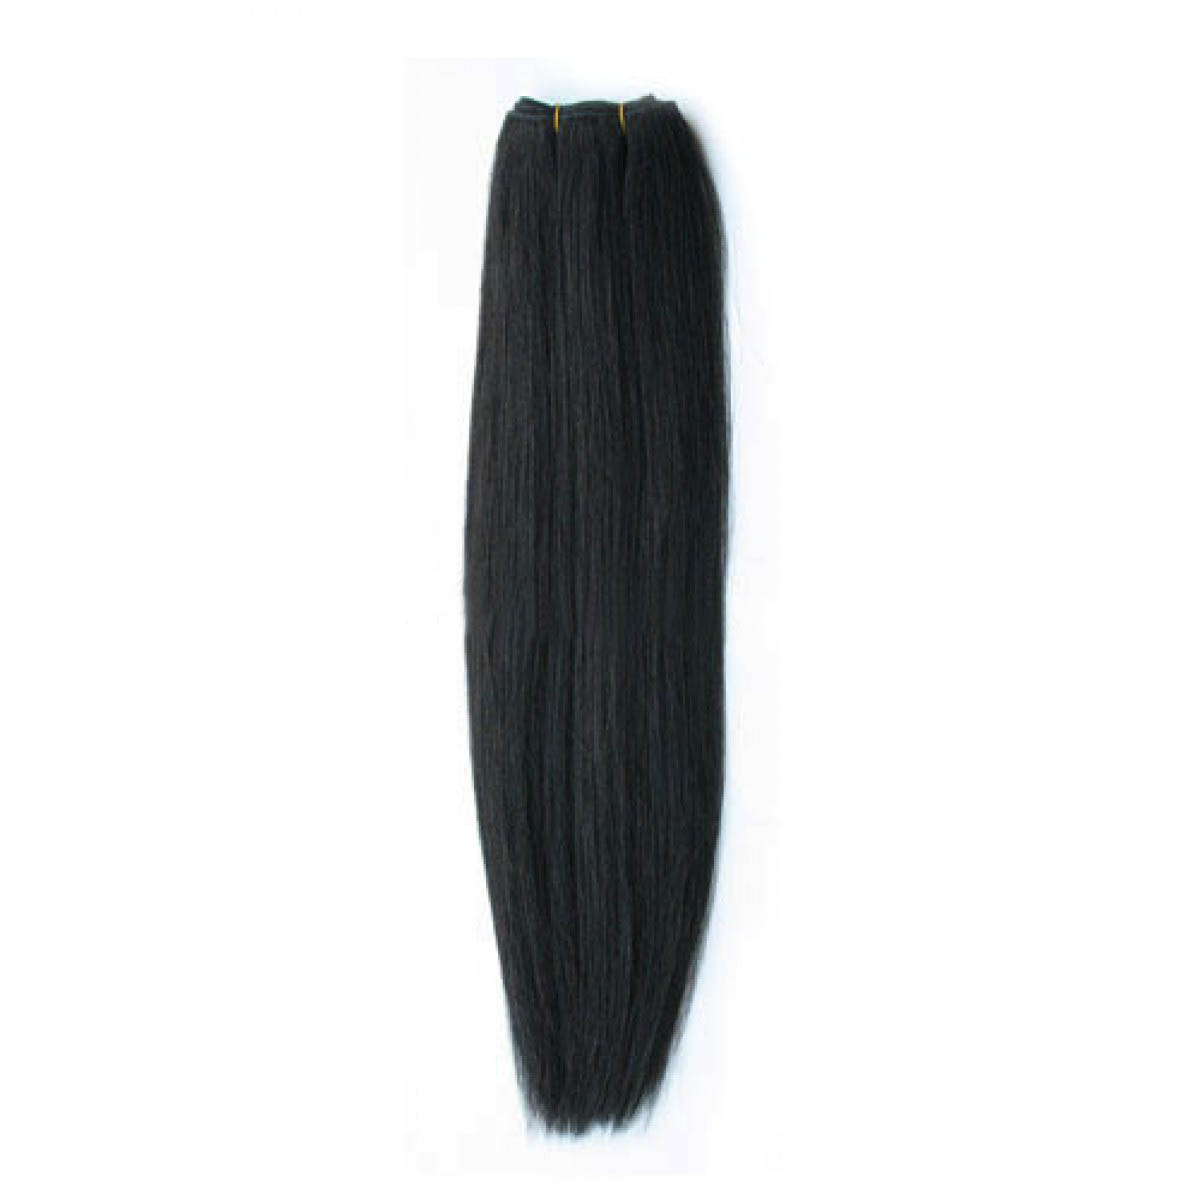 14 Inch #1b Natural Black Straight Indian Remy Hair Wefts no 1